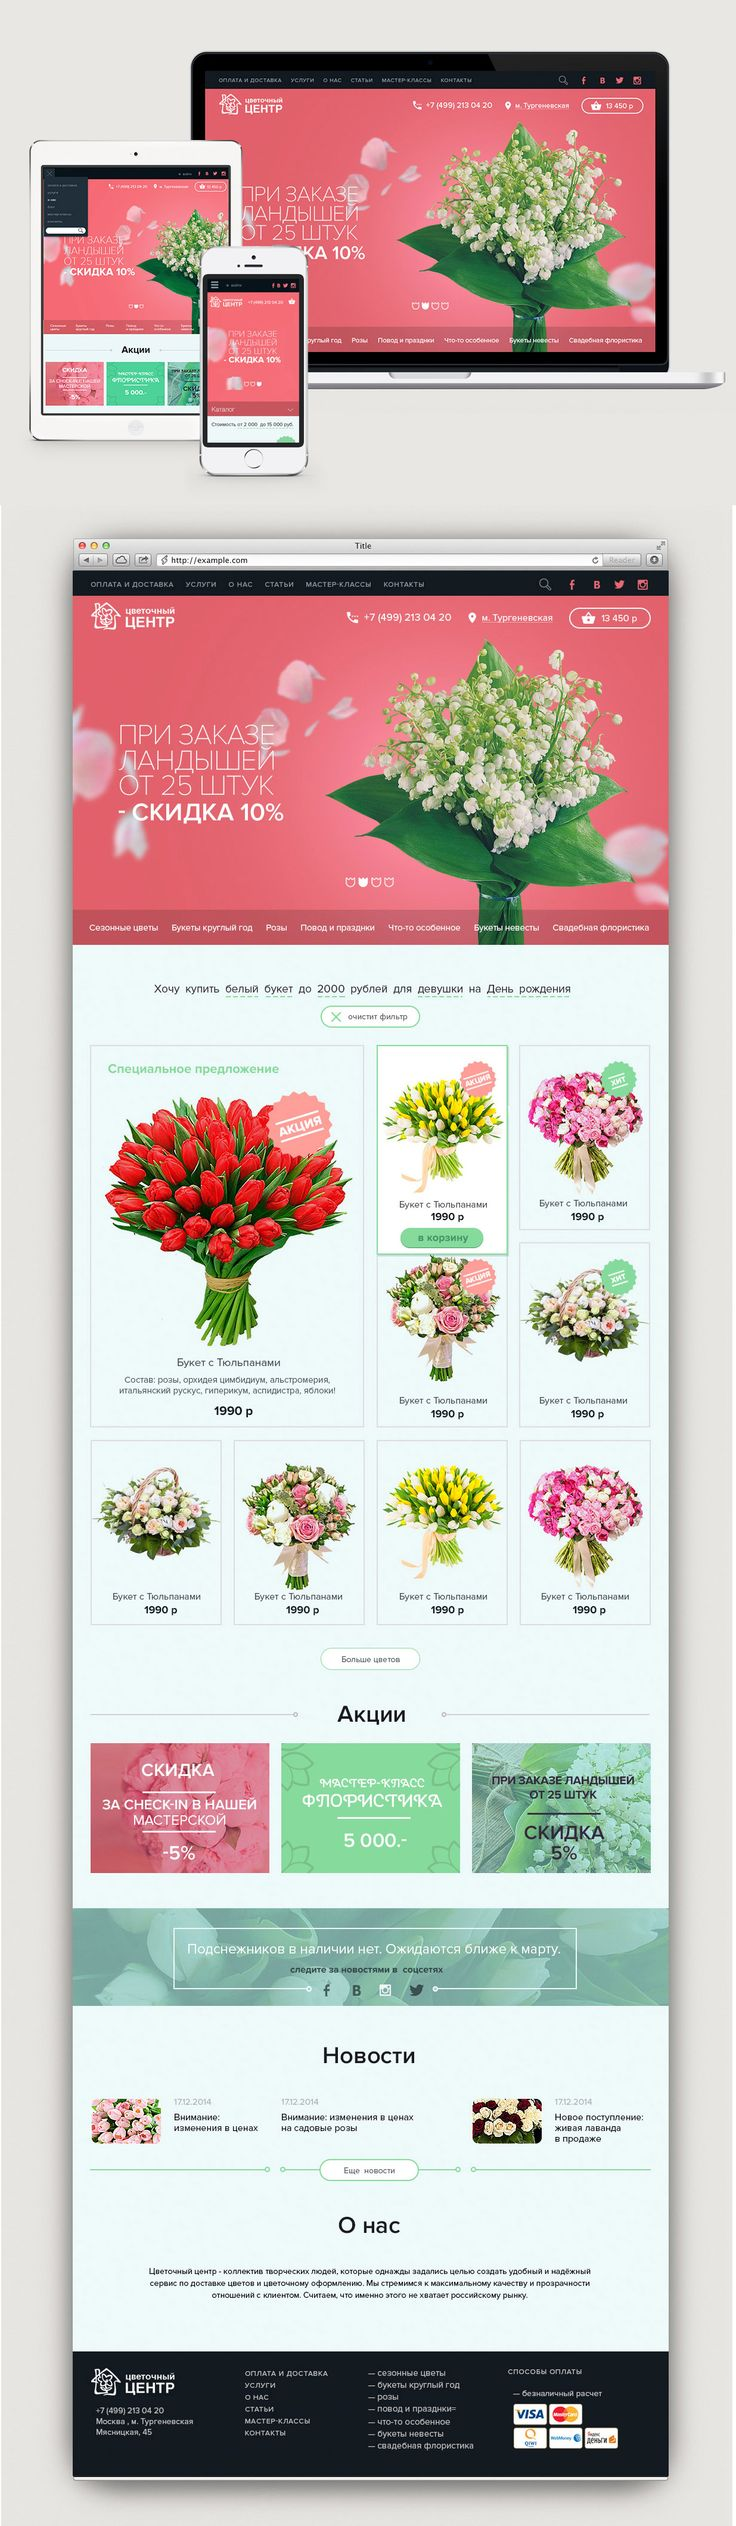 web design for online store of flowers